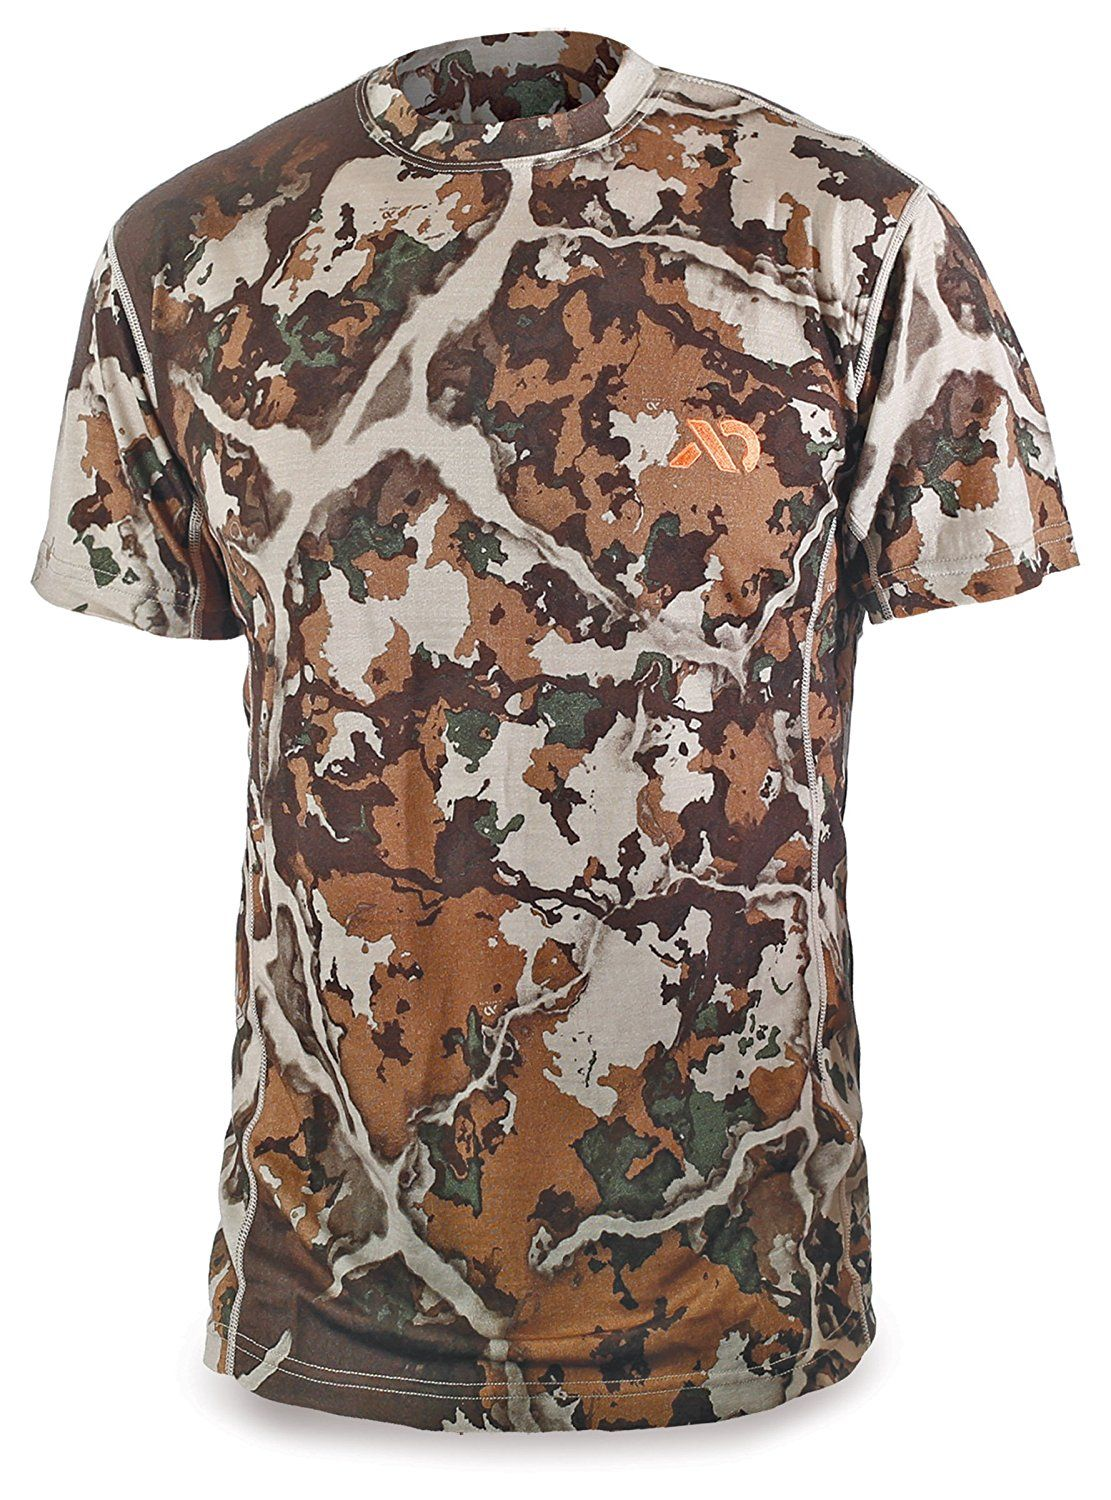 e541700e07fbd Hunting Shirts, Hunting Clothes, Mens Outdoor Clothing, Layering, Warm  Weather, Outdoor